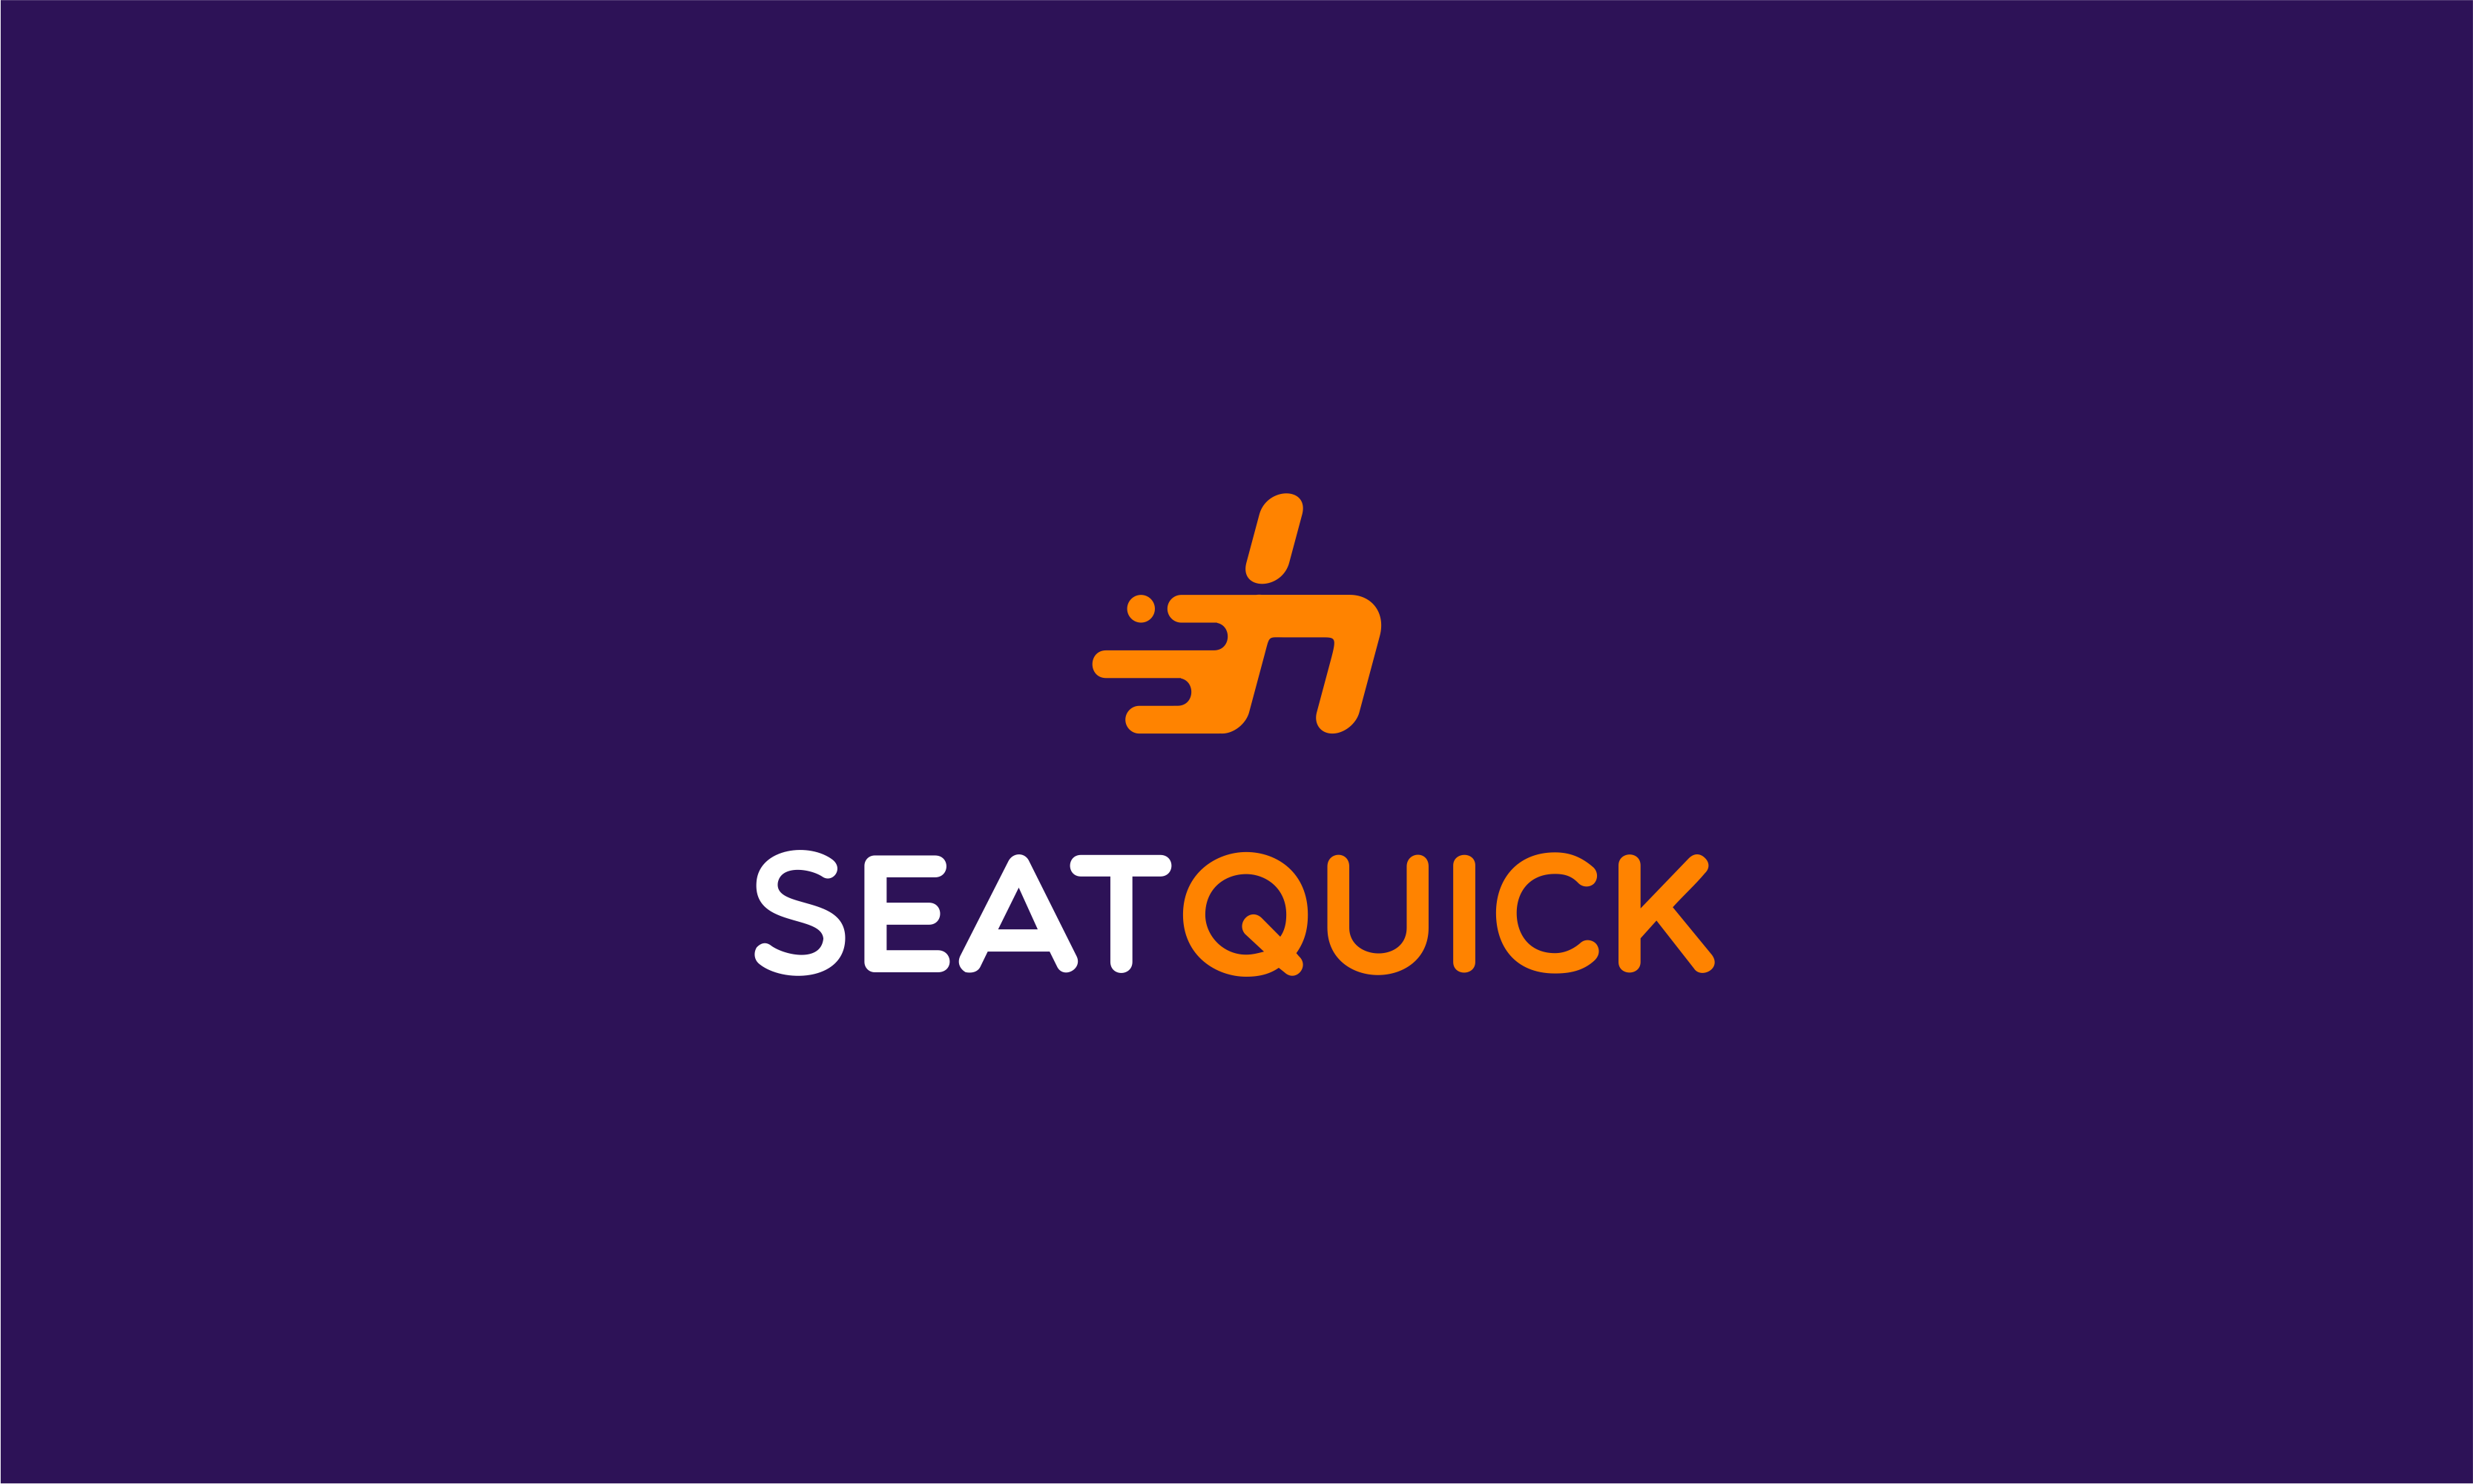 Seatquick - Retail domain name for sale